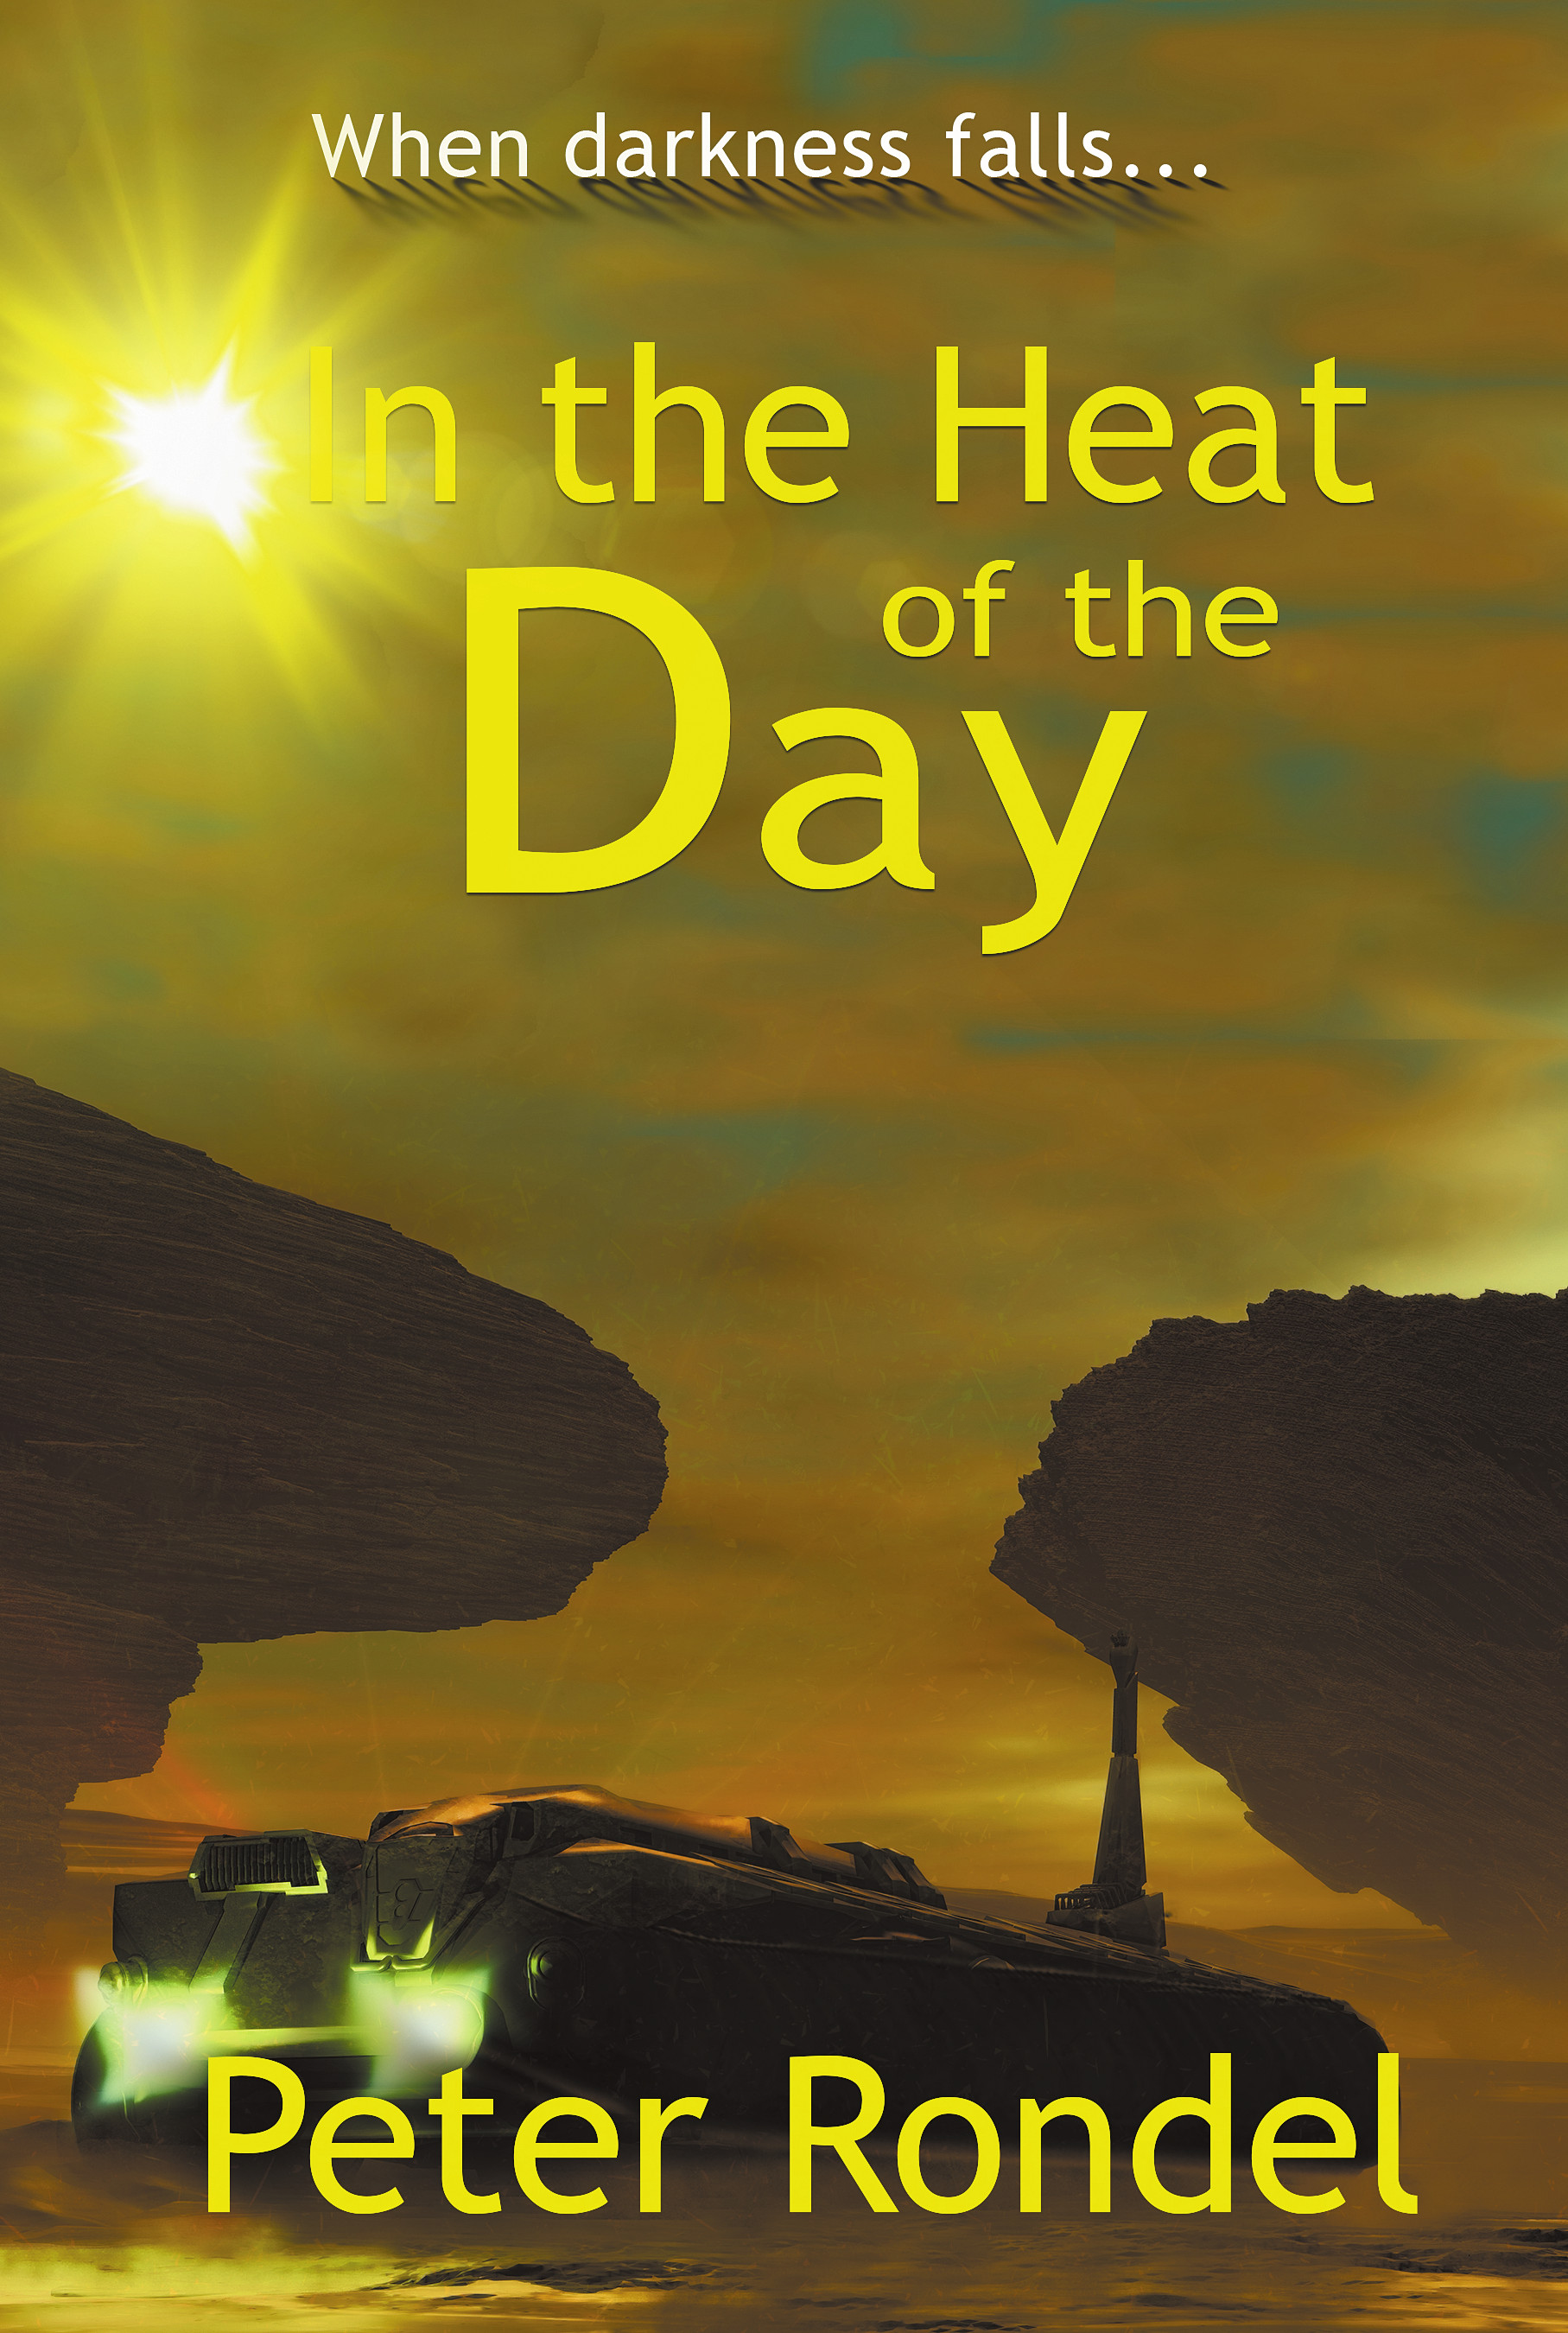 in-the-heat-of-the-day-front-cover